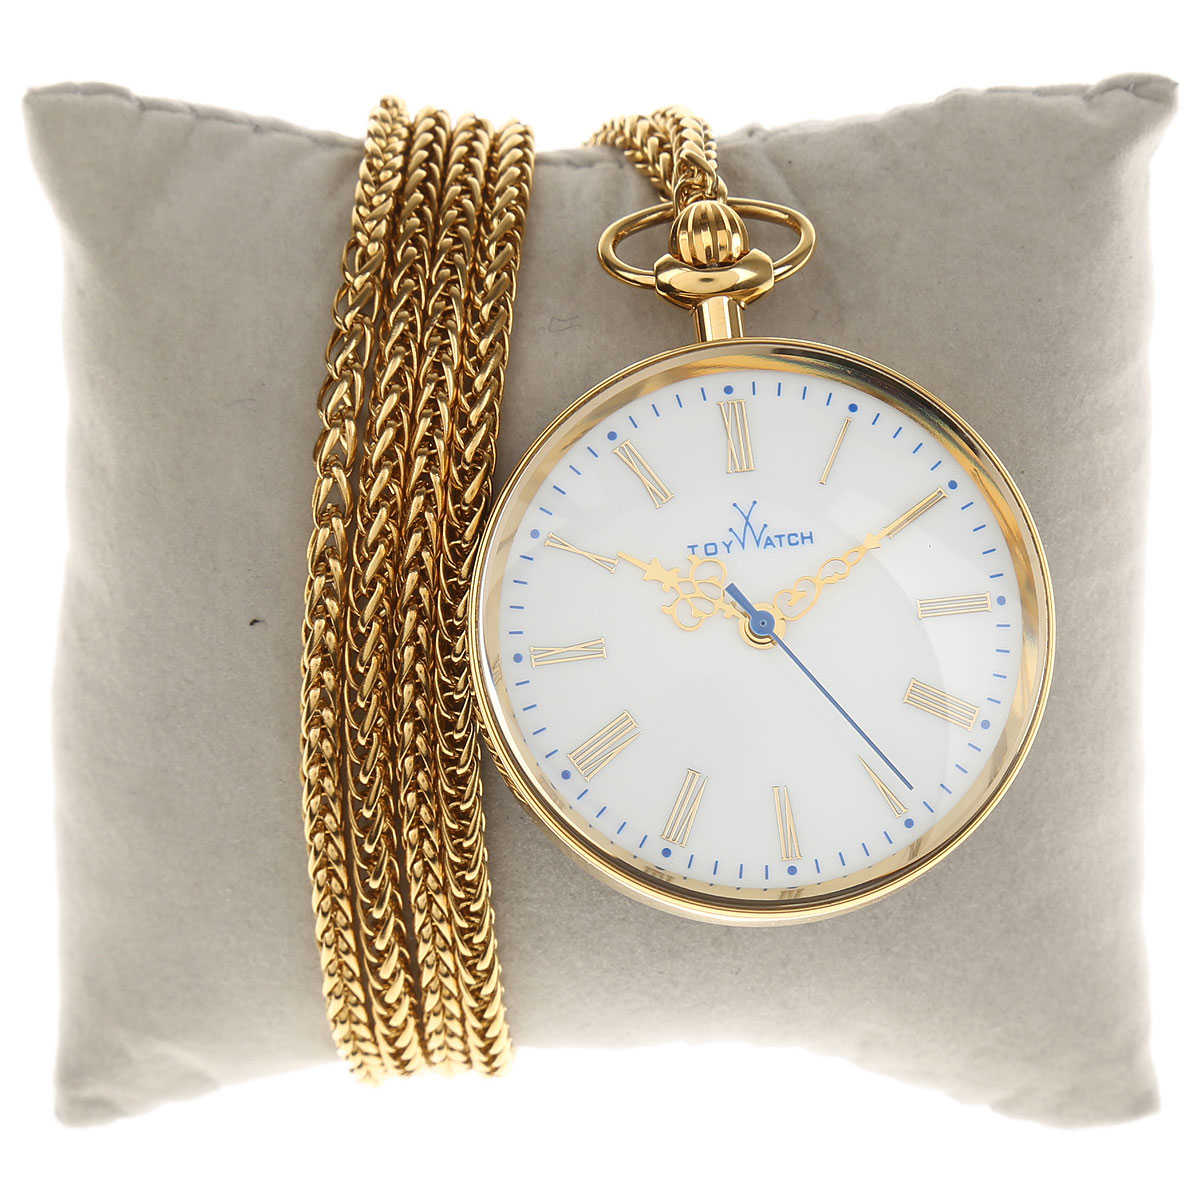 Toy Watch Watch for Women On Sale Gold SE - GOOFASH